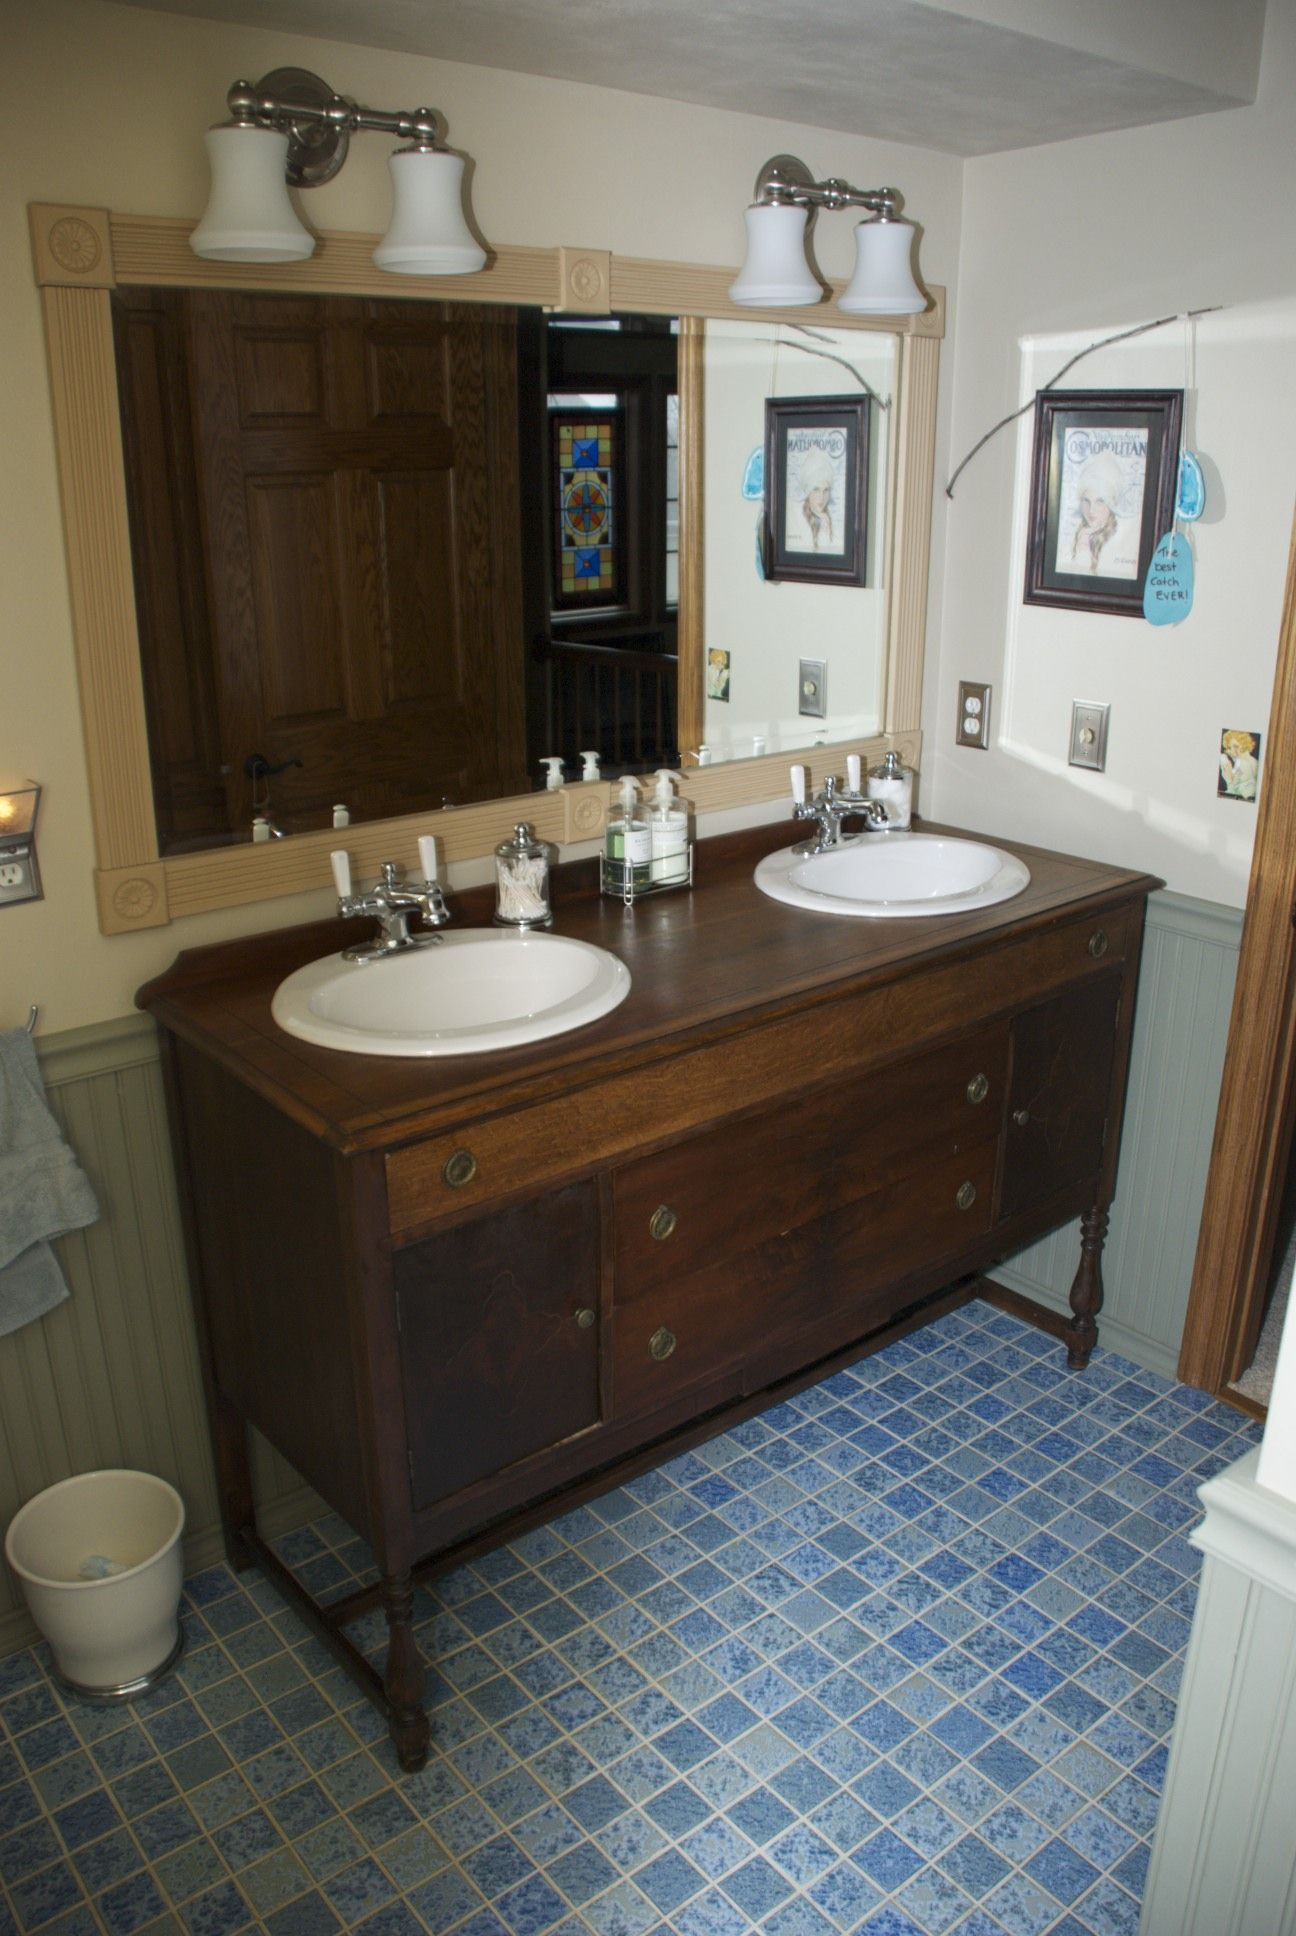 Bathroom vanity made from vintage buffet / sideboard. All you need